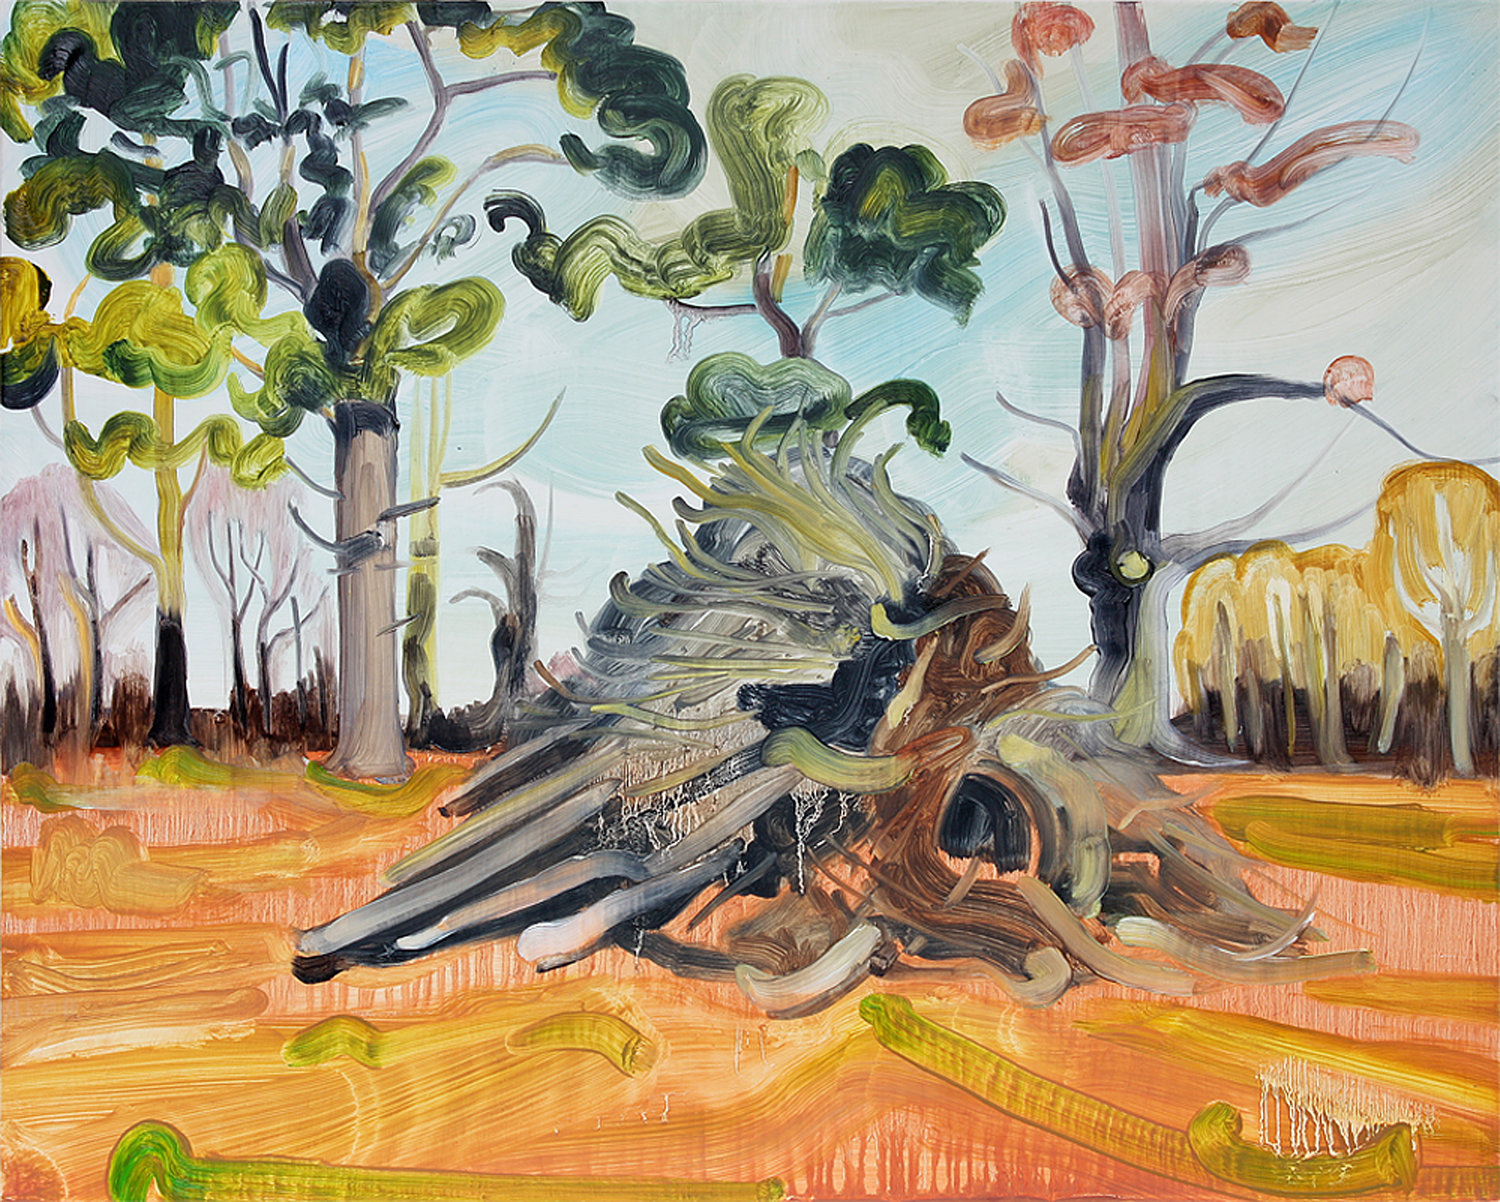 'Pyre', Caroline Thomson, Oil on wood, 40.5 x 50.5 x 5 cm